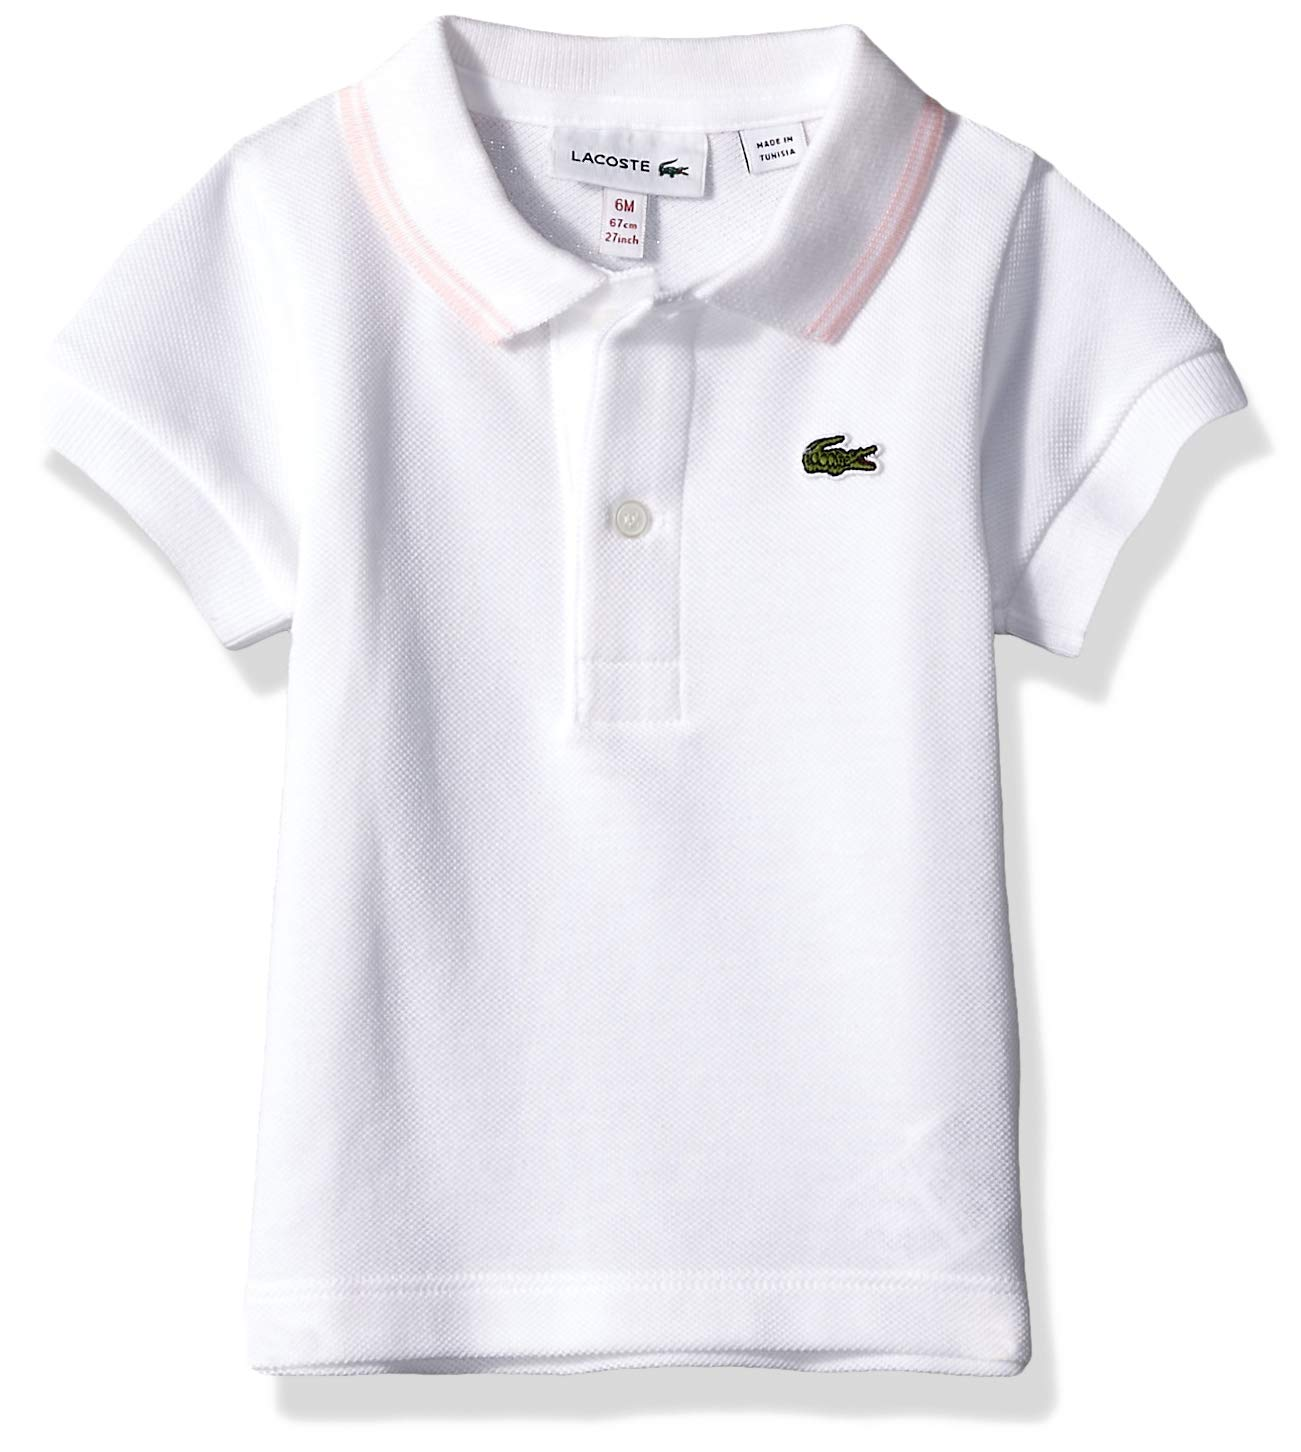 Lacoste Baby Infant Layette Short Sleeve Pique Semi Fancy Polo Gift Box, White Flamingo, 6 Months by Lacoste